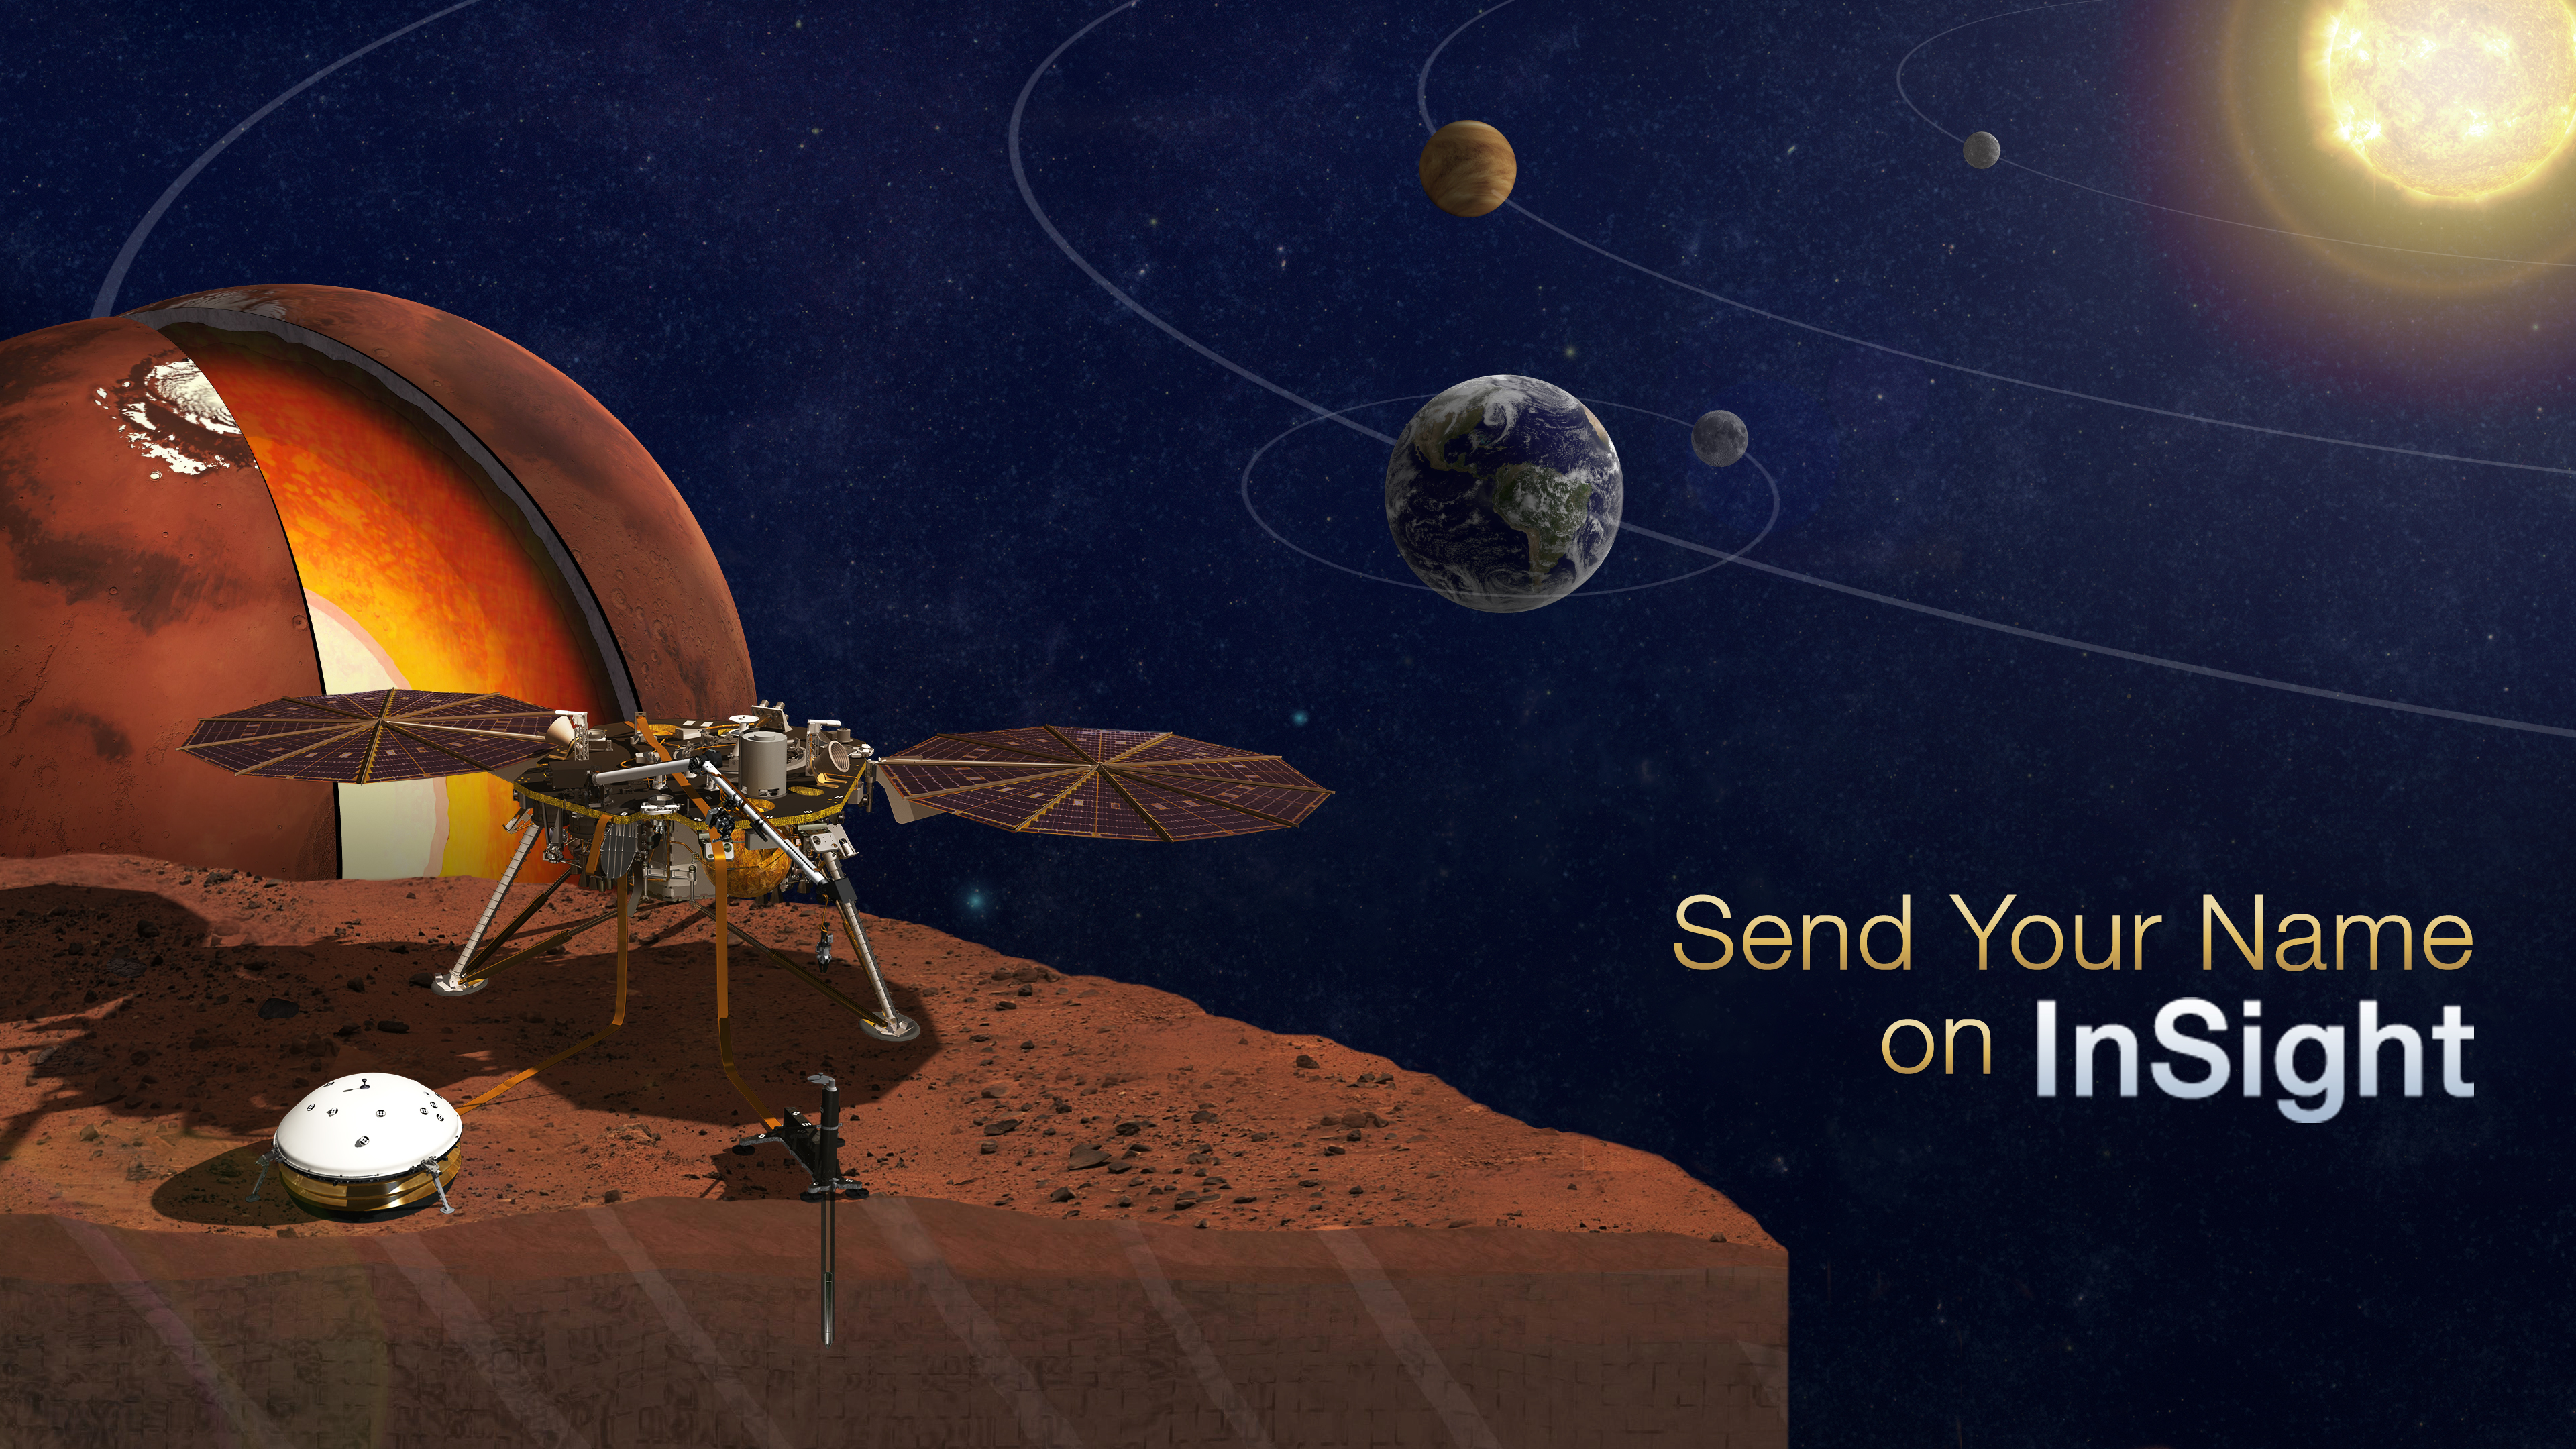 Send Your Name to Mars on NASA's Next Red Planet Mission